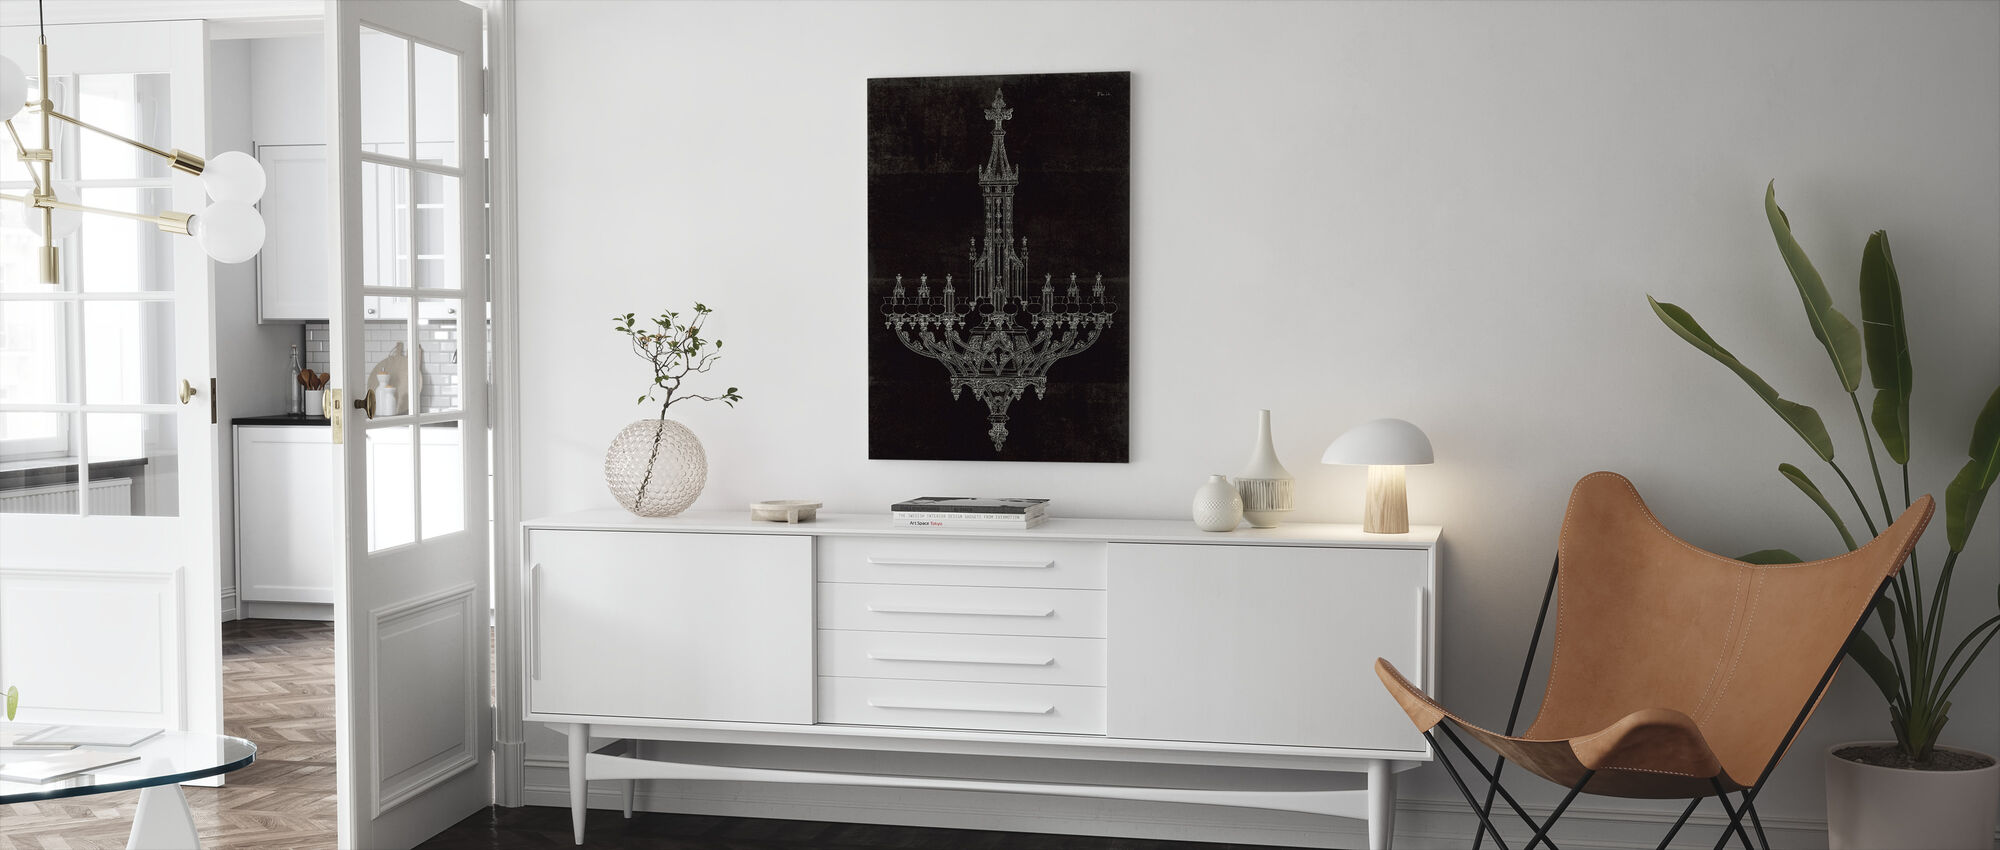 Chelsea Chandelier - Canvas print - Living Room